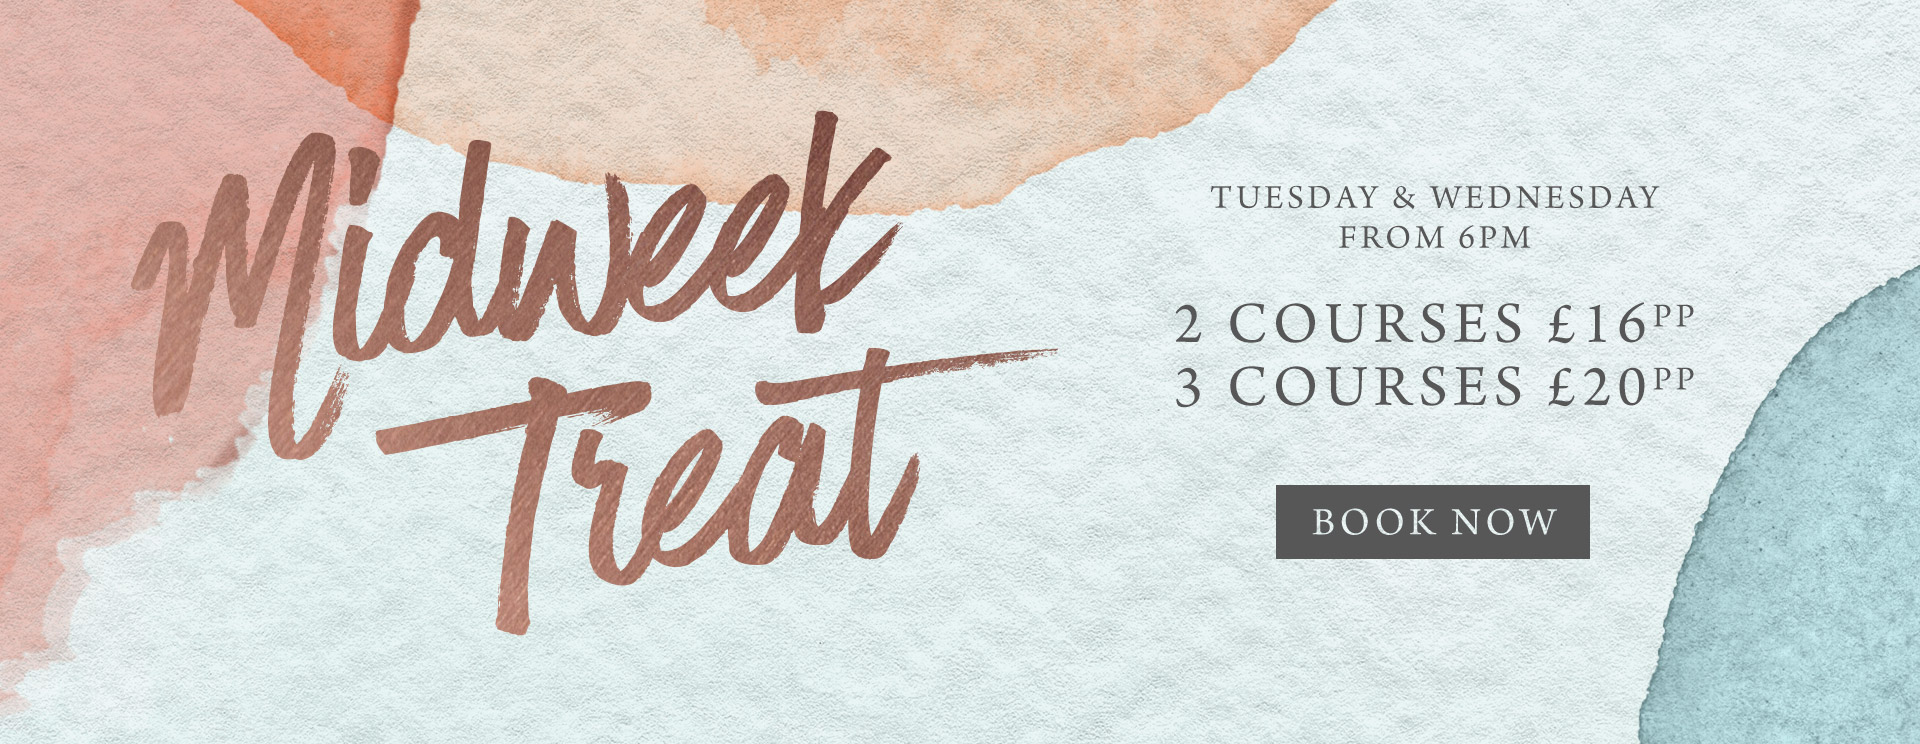 Midweek treat at The Seahorse - Book now